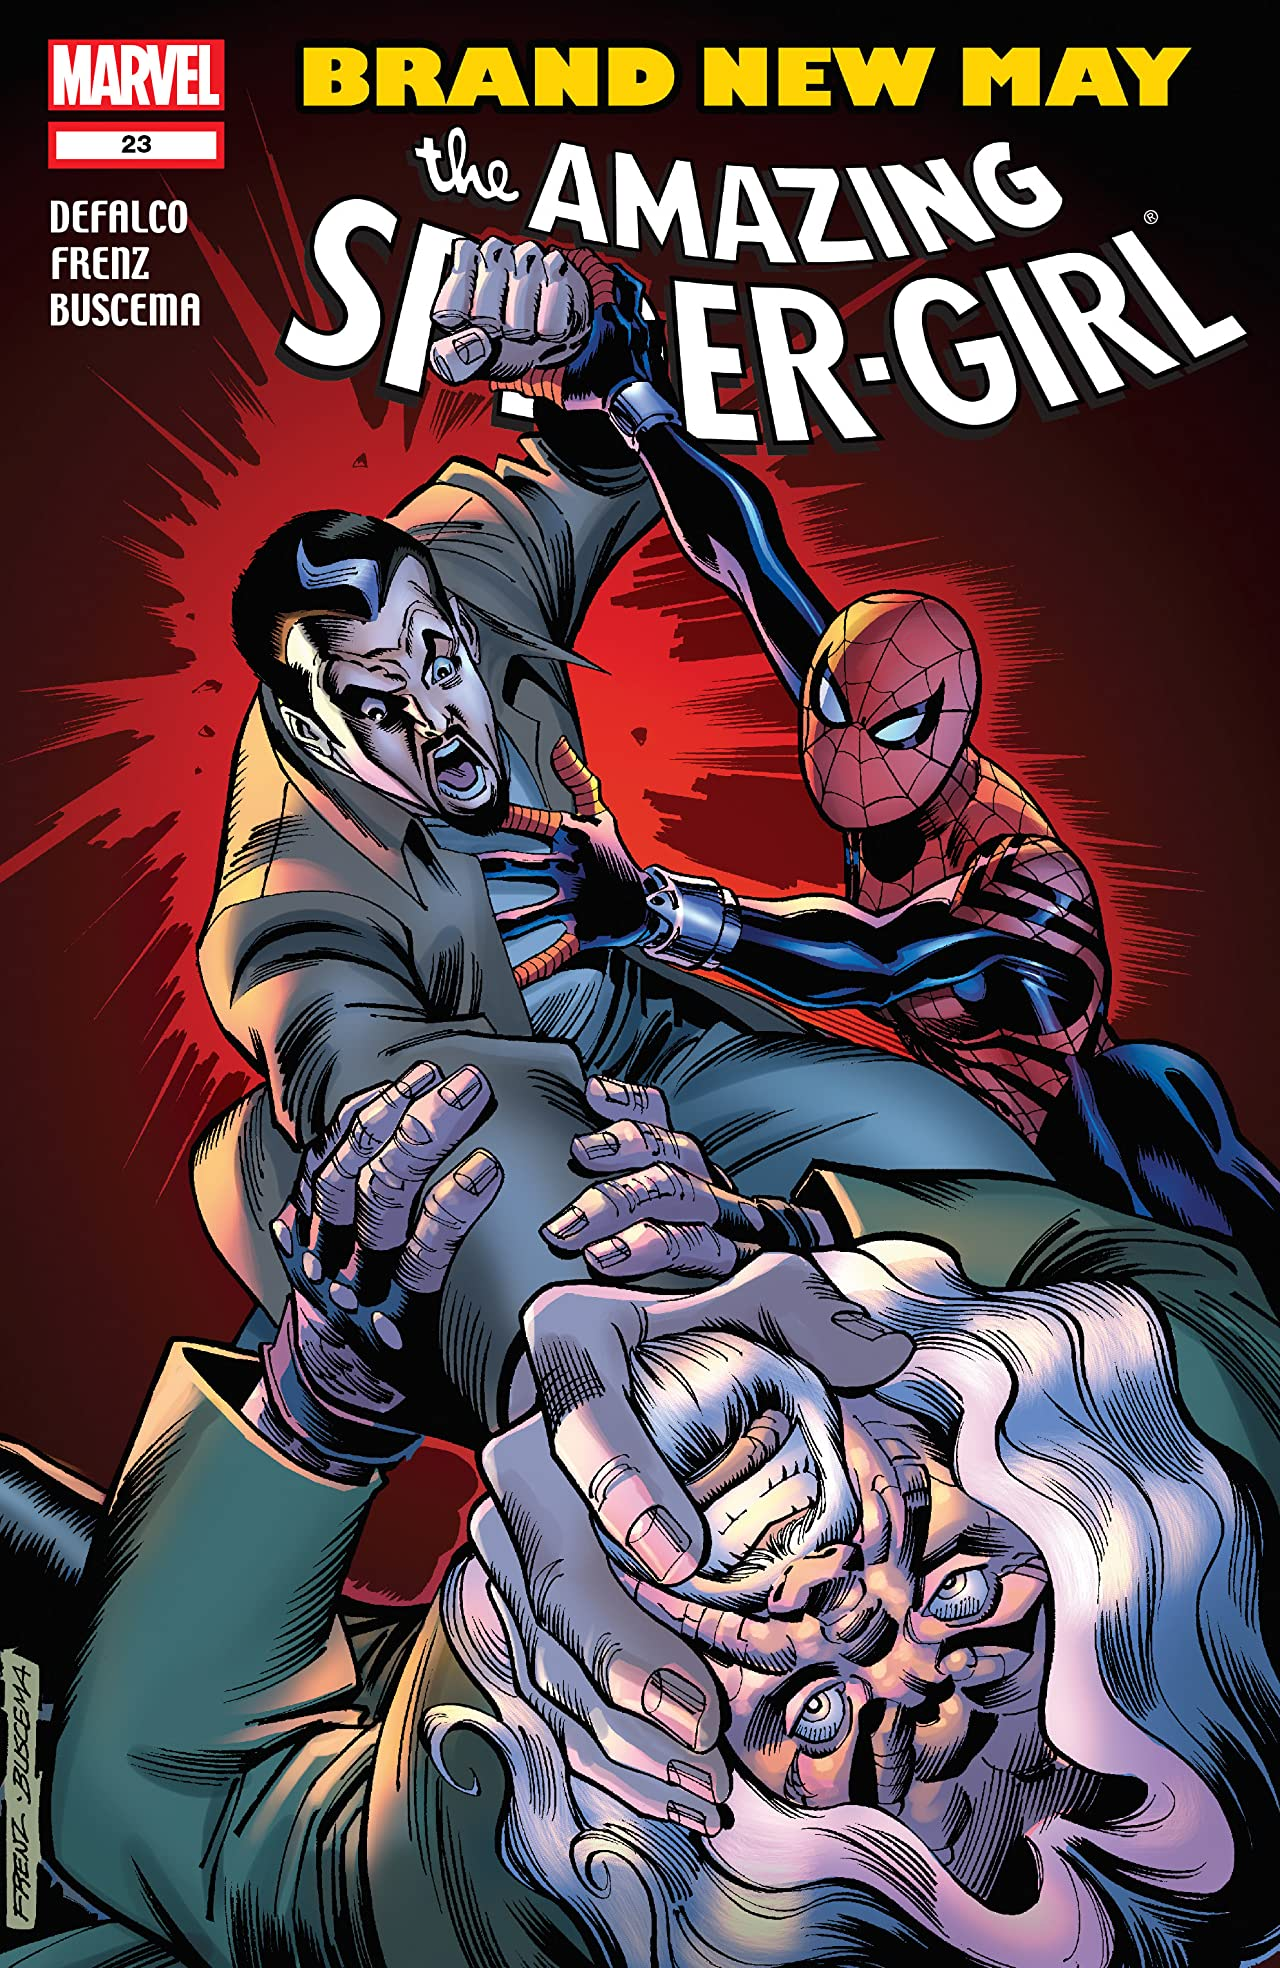 Amazing Spider-Girl (2006-2009) #23